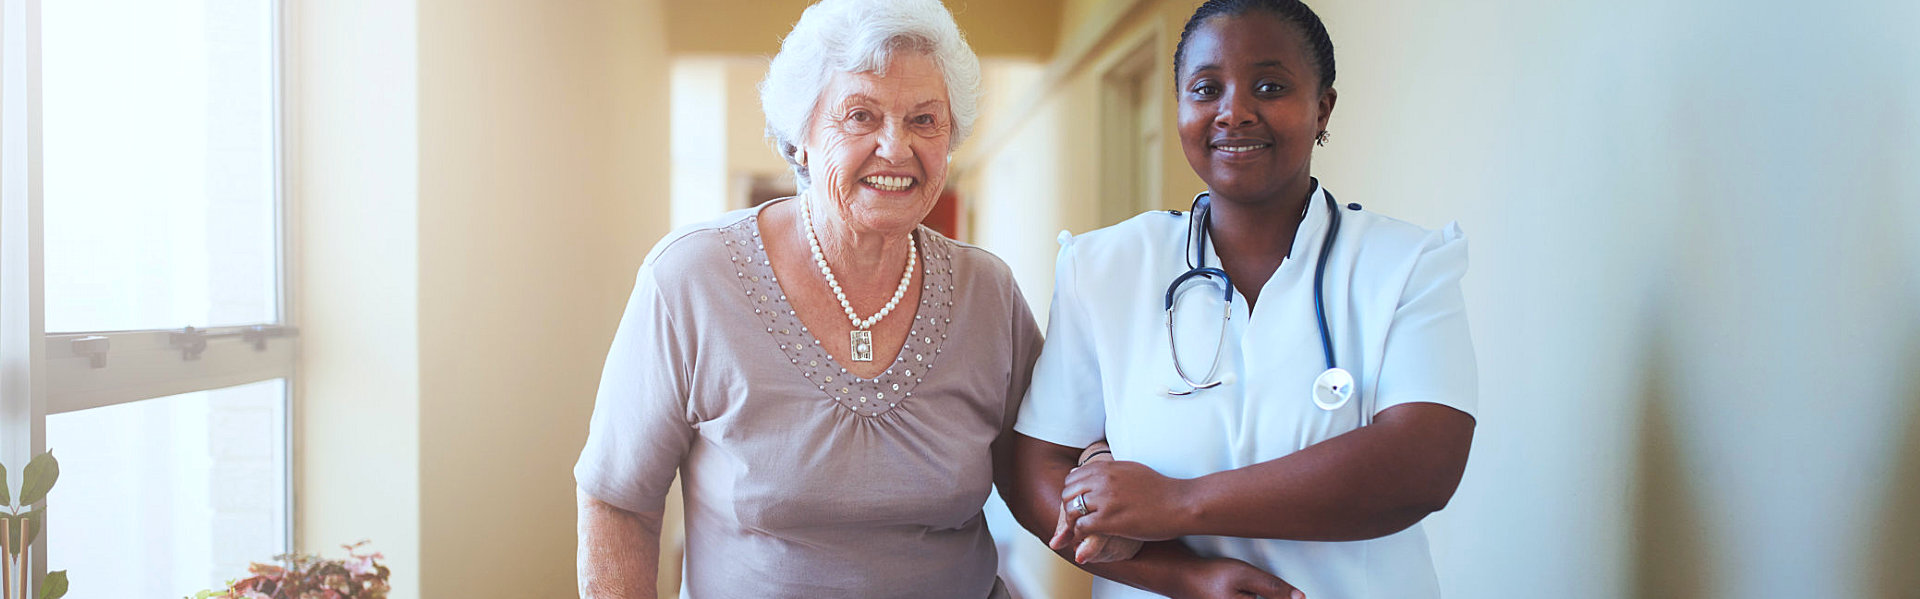 Home Care Service Nearby Genesis Home Healthcare Services Inc Skilled Nursing And In